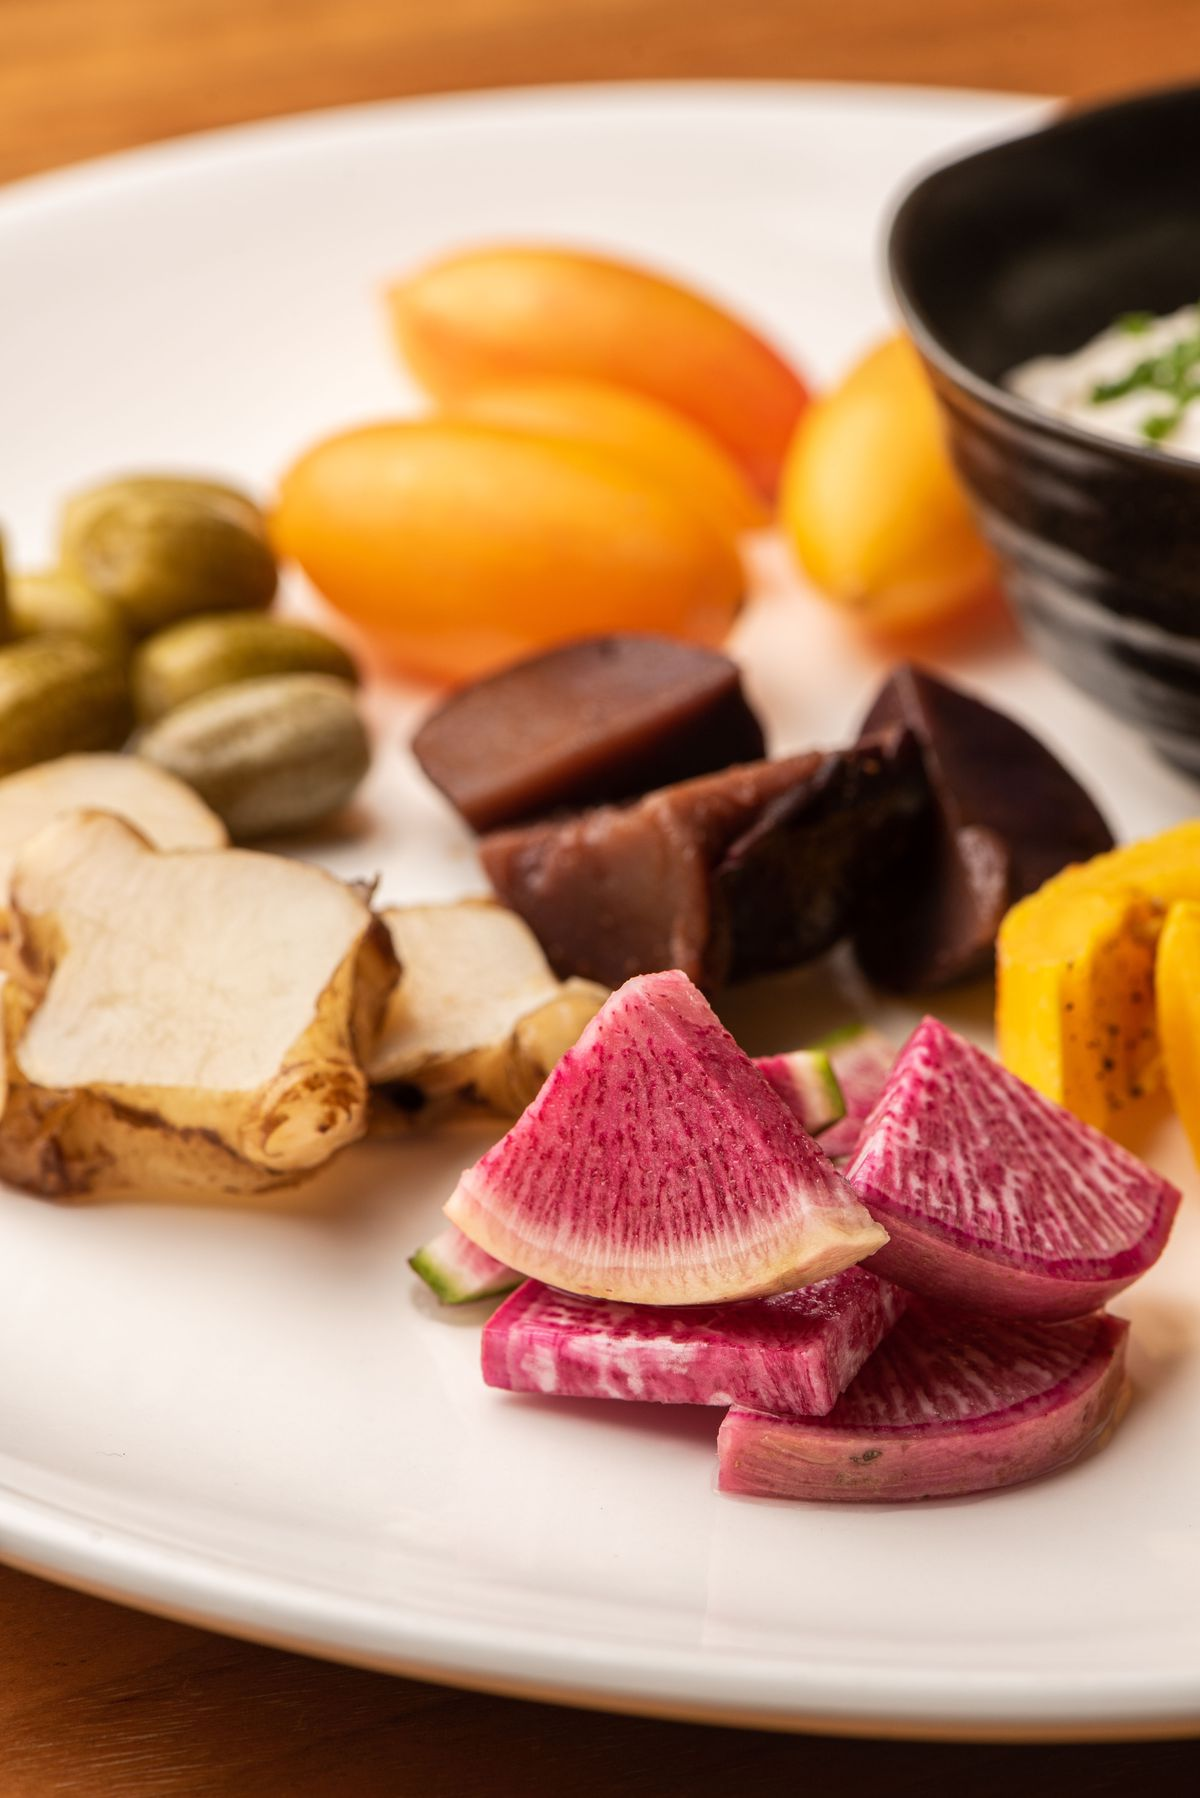 A vertical photo of pickled vegetables on a plate.